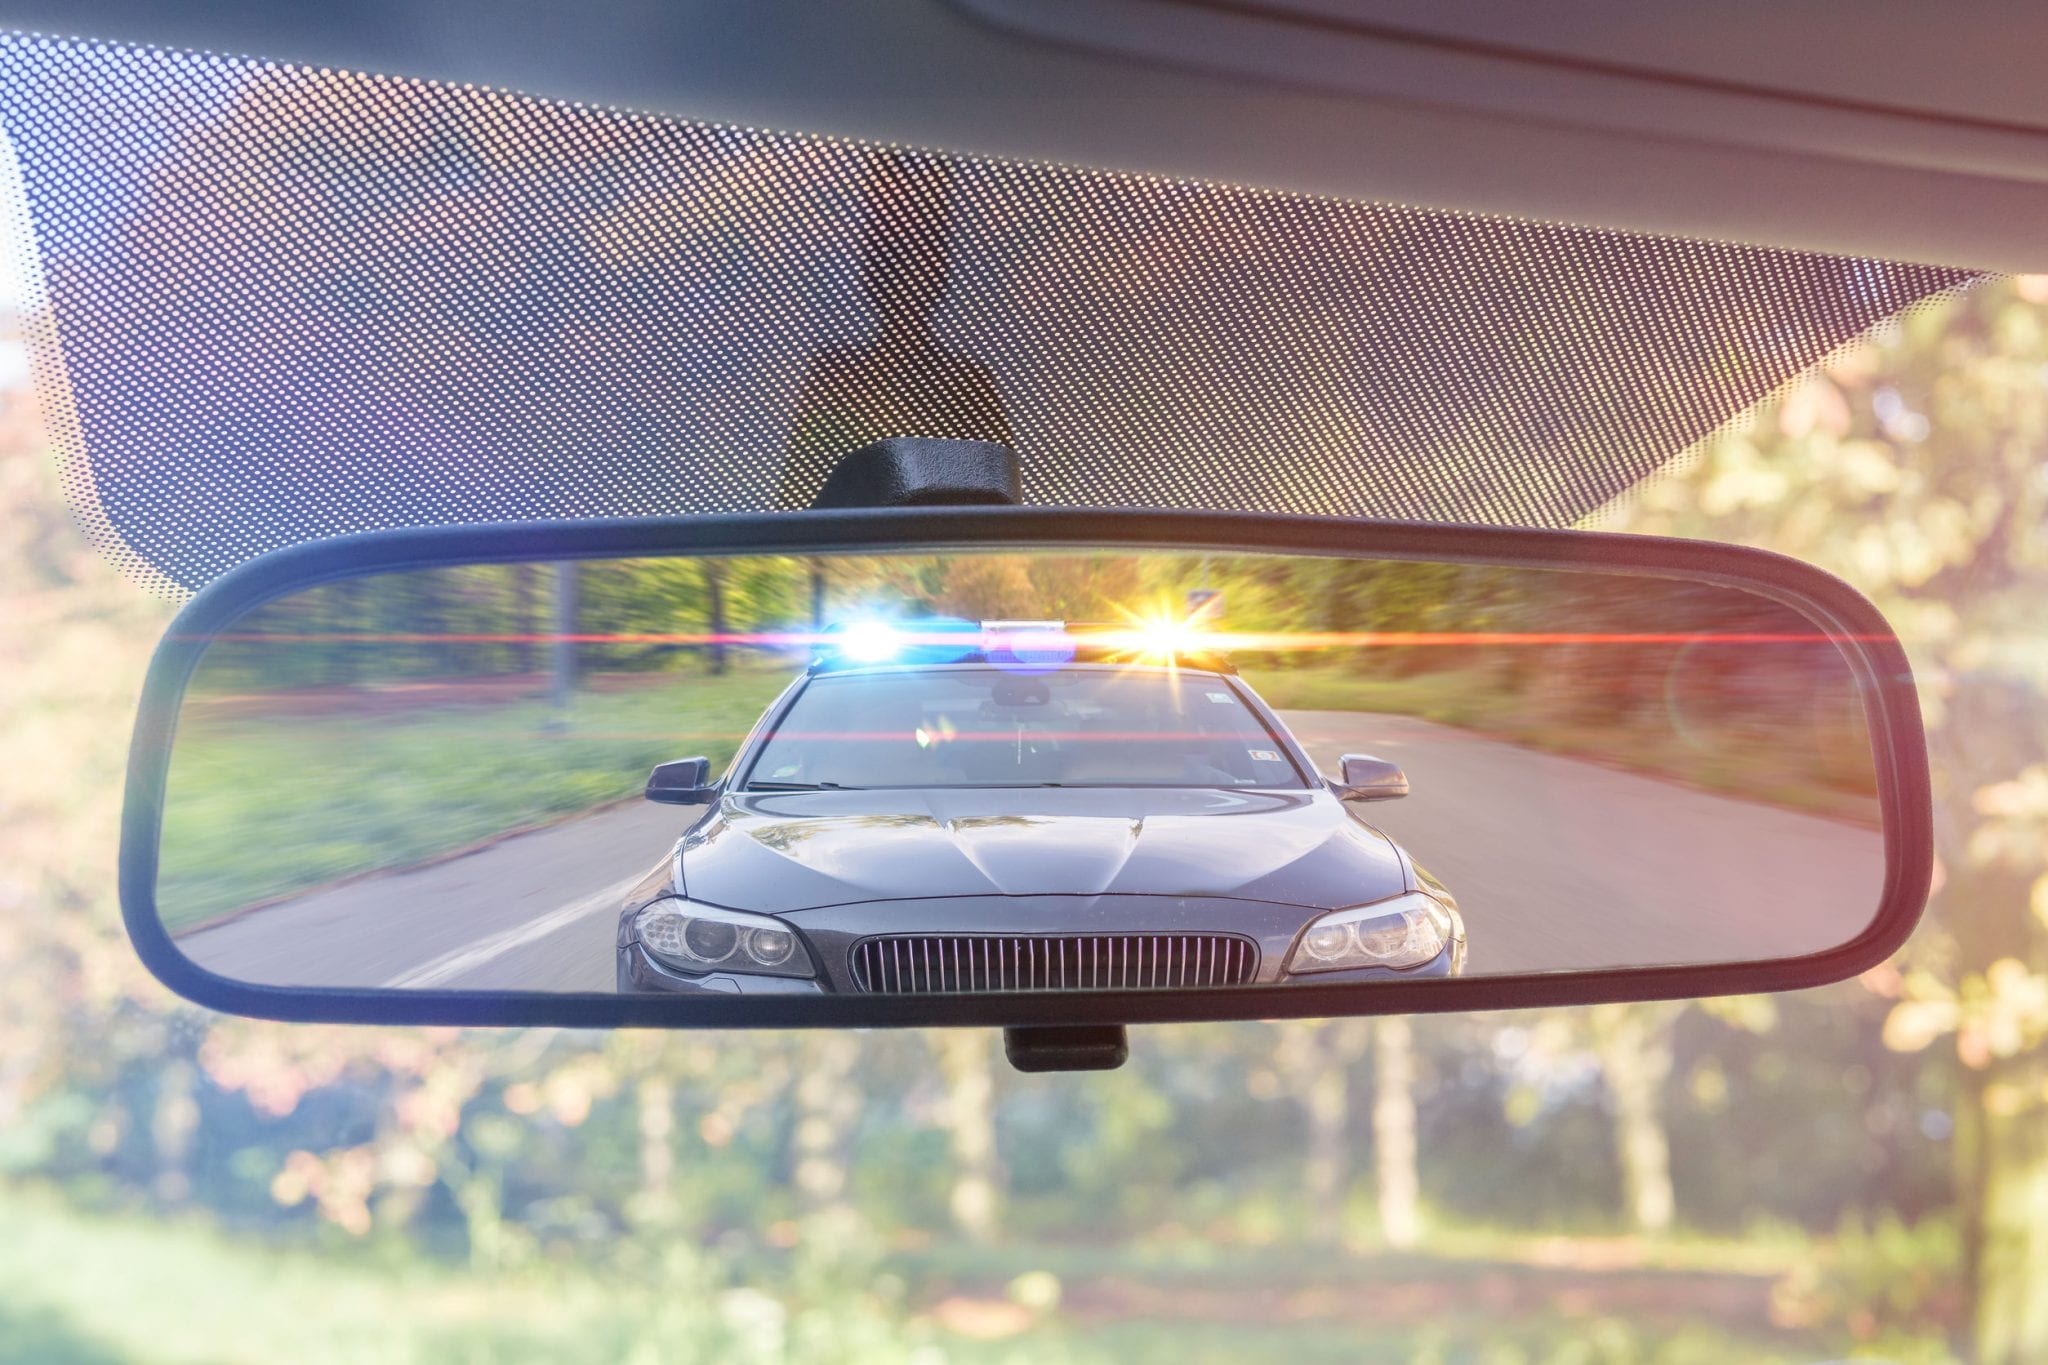 Stopped by Texas Cops Illegally? It Could Change Your Criminal Case